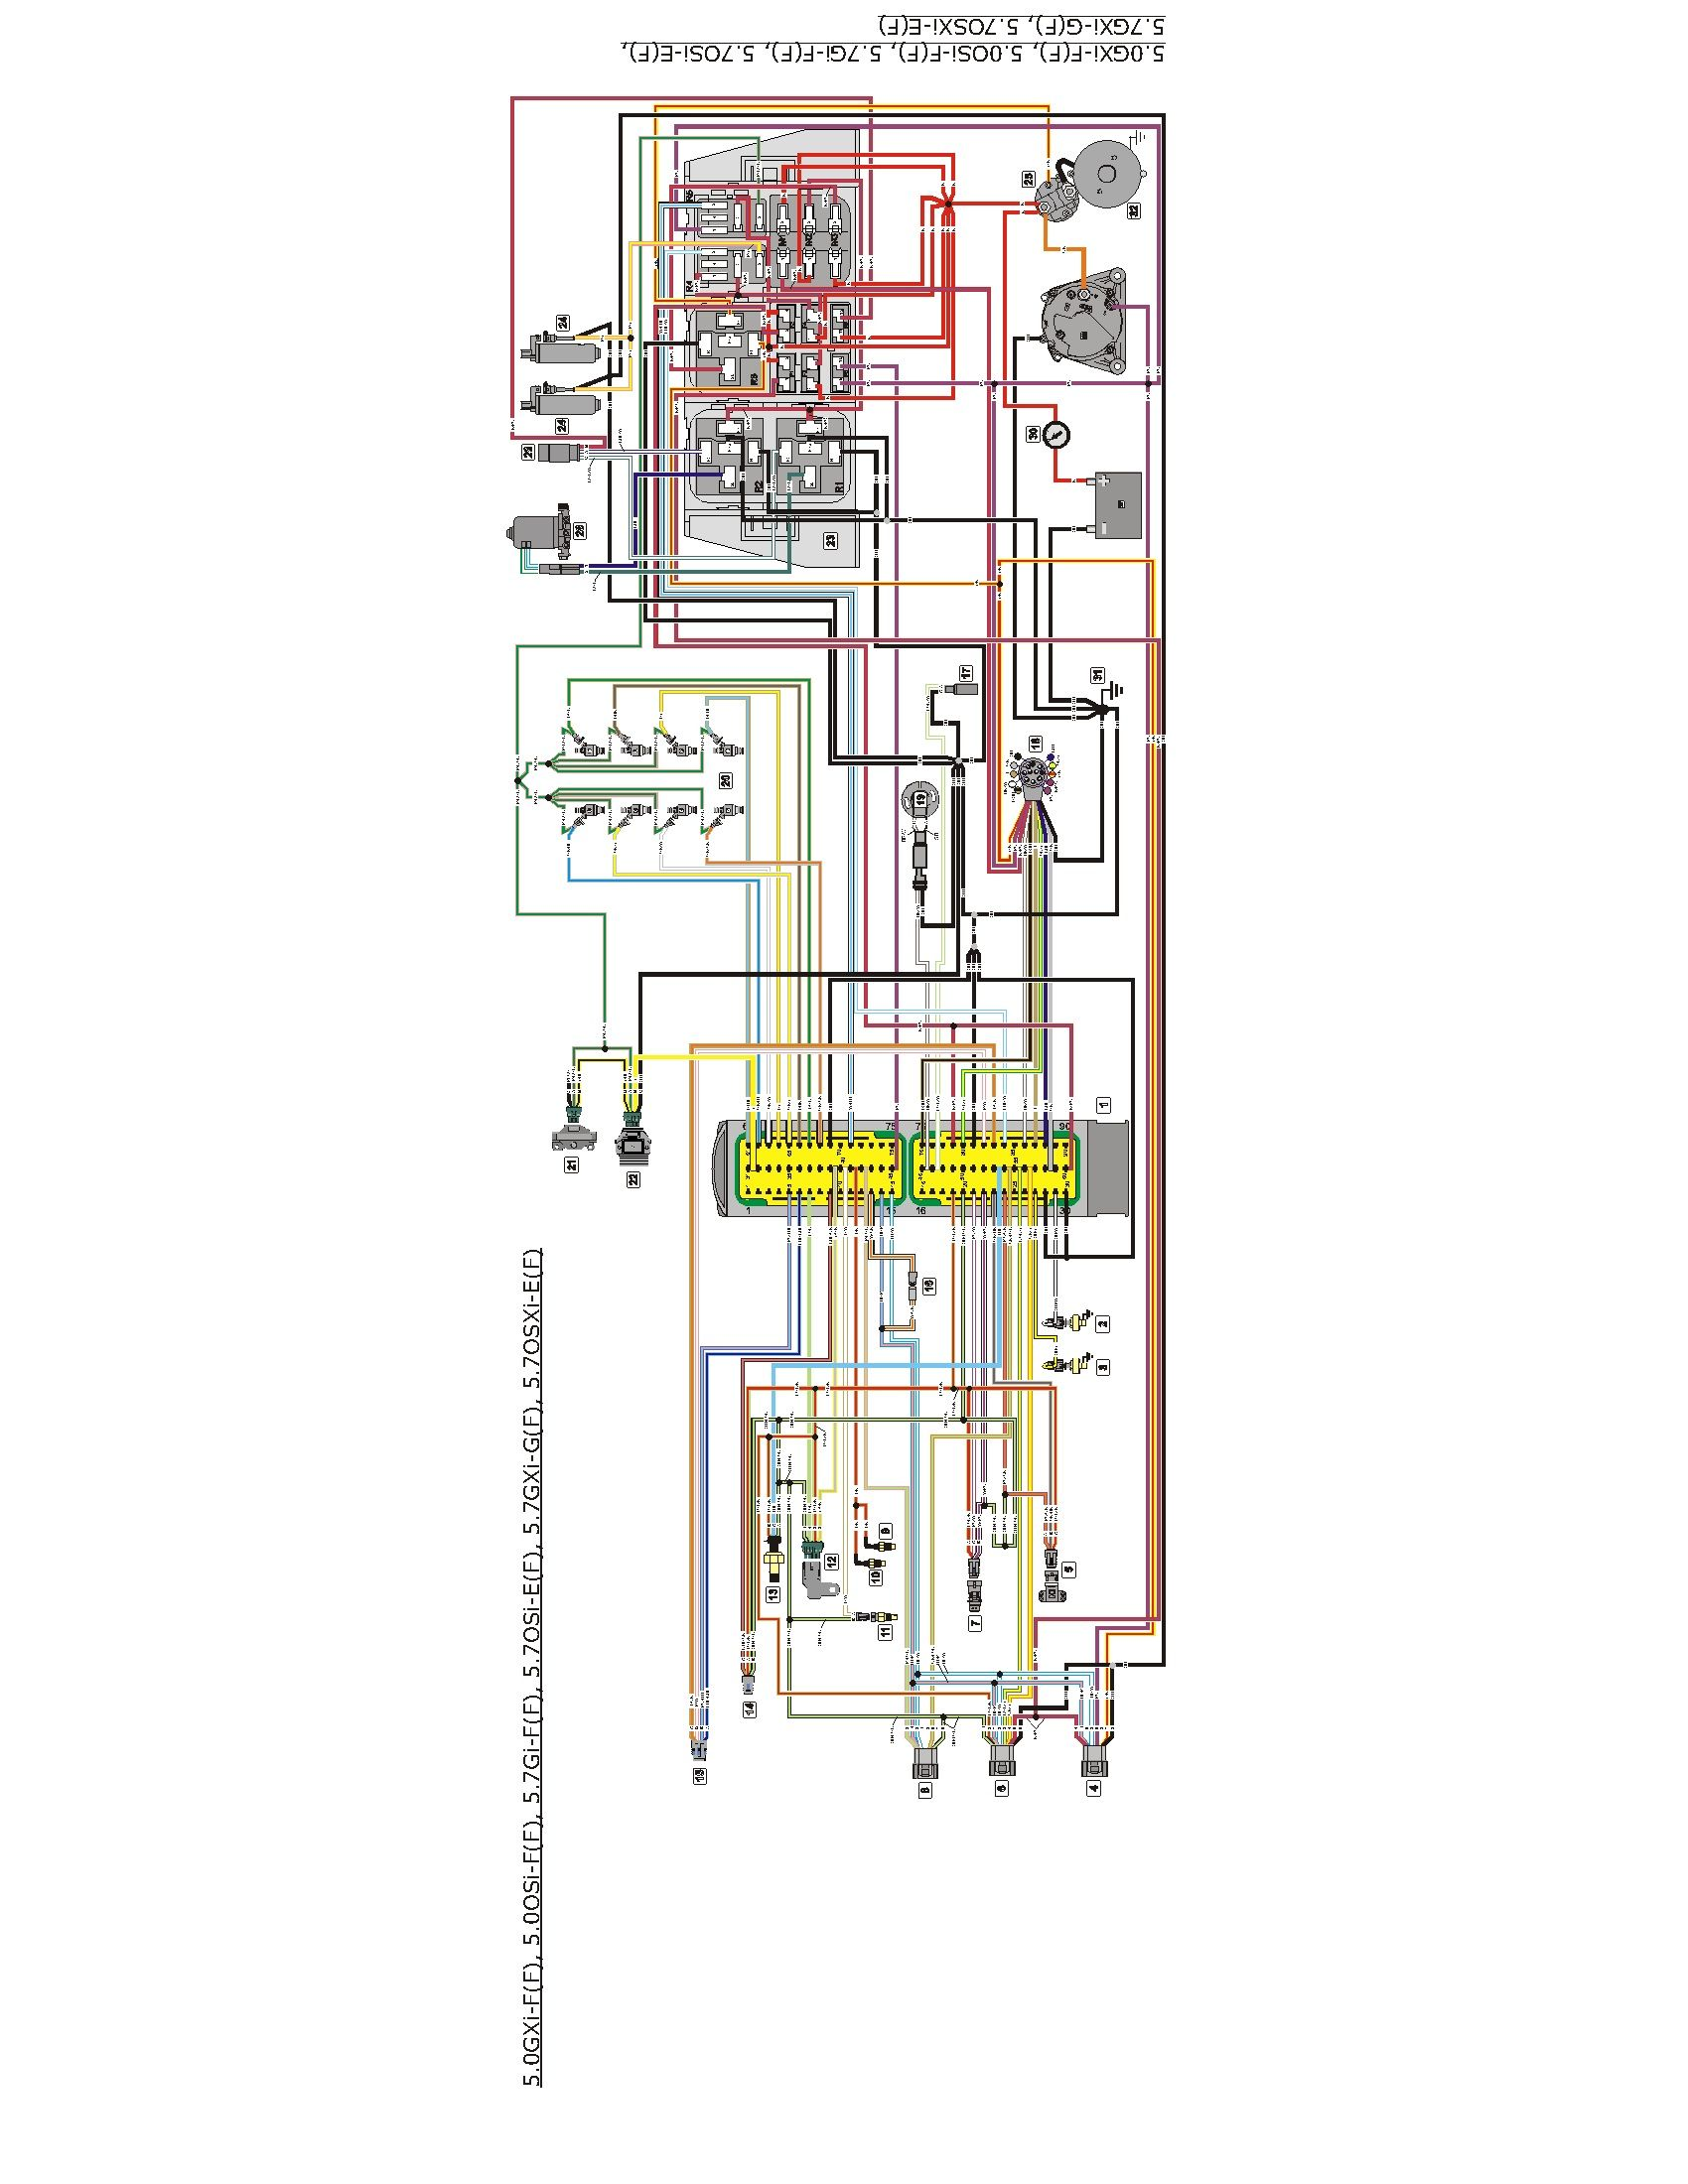 volvo penta 5 7 engine wiring diagram boat pinterest volvo and rh pinterest com volvo penta 4.3 gxi wiring diagram volvo penta 5.0 gxi-e wiring diagram